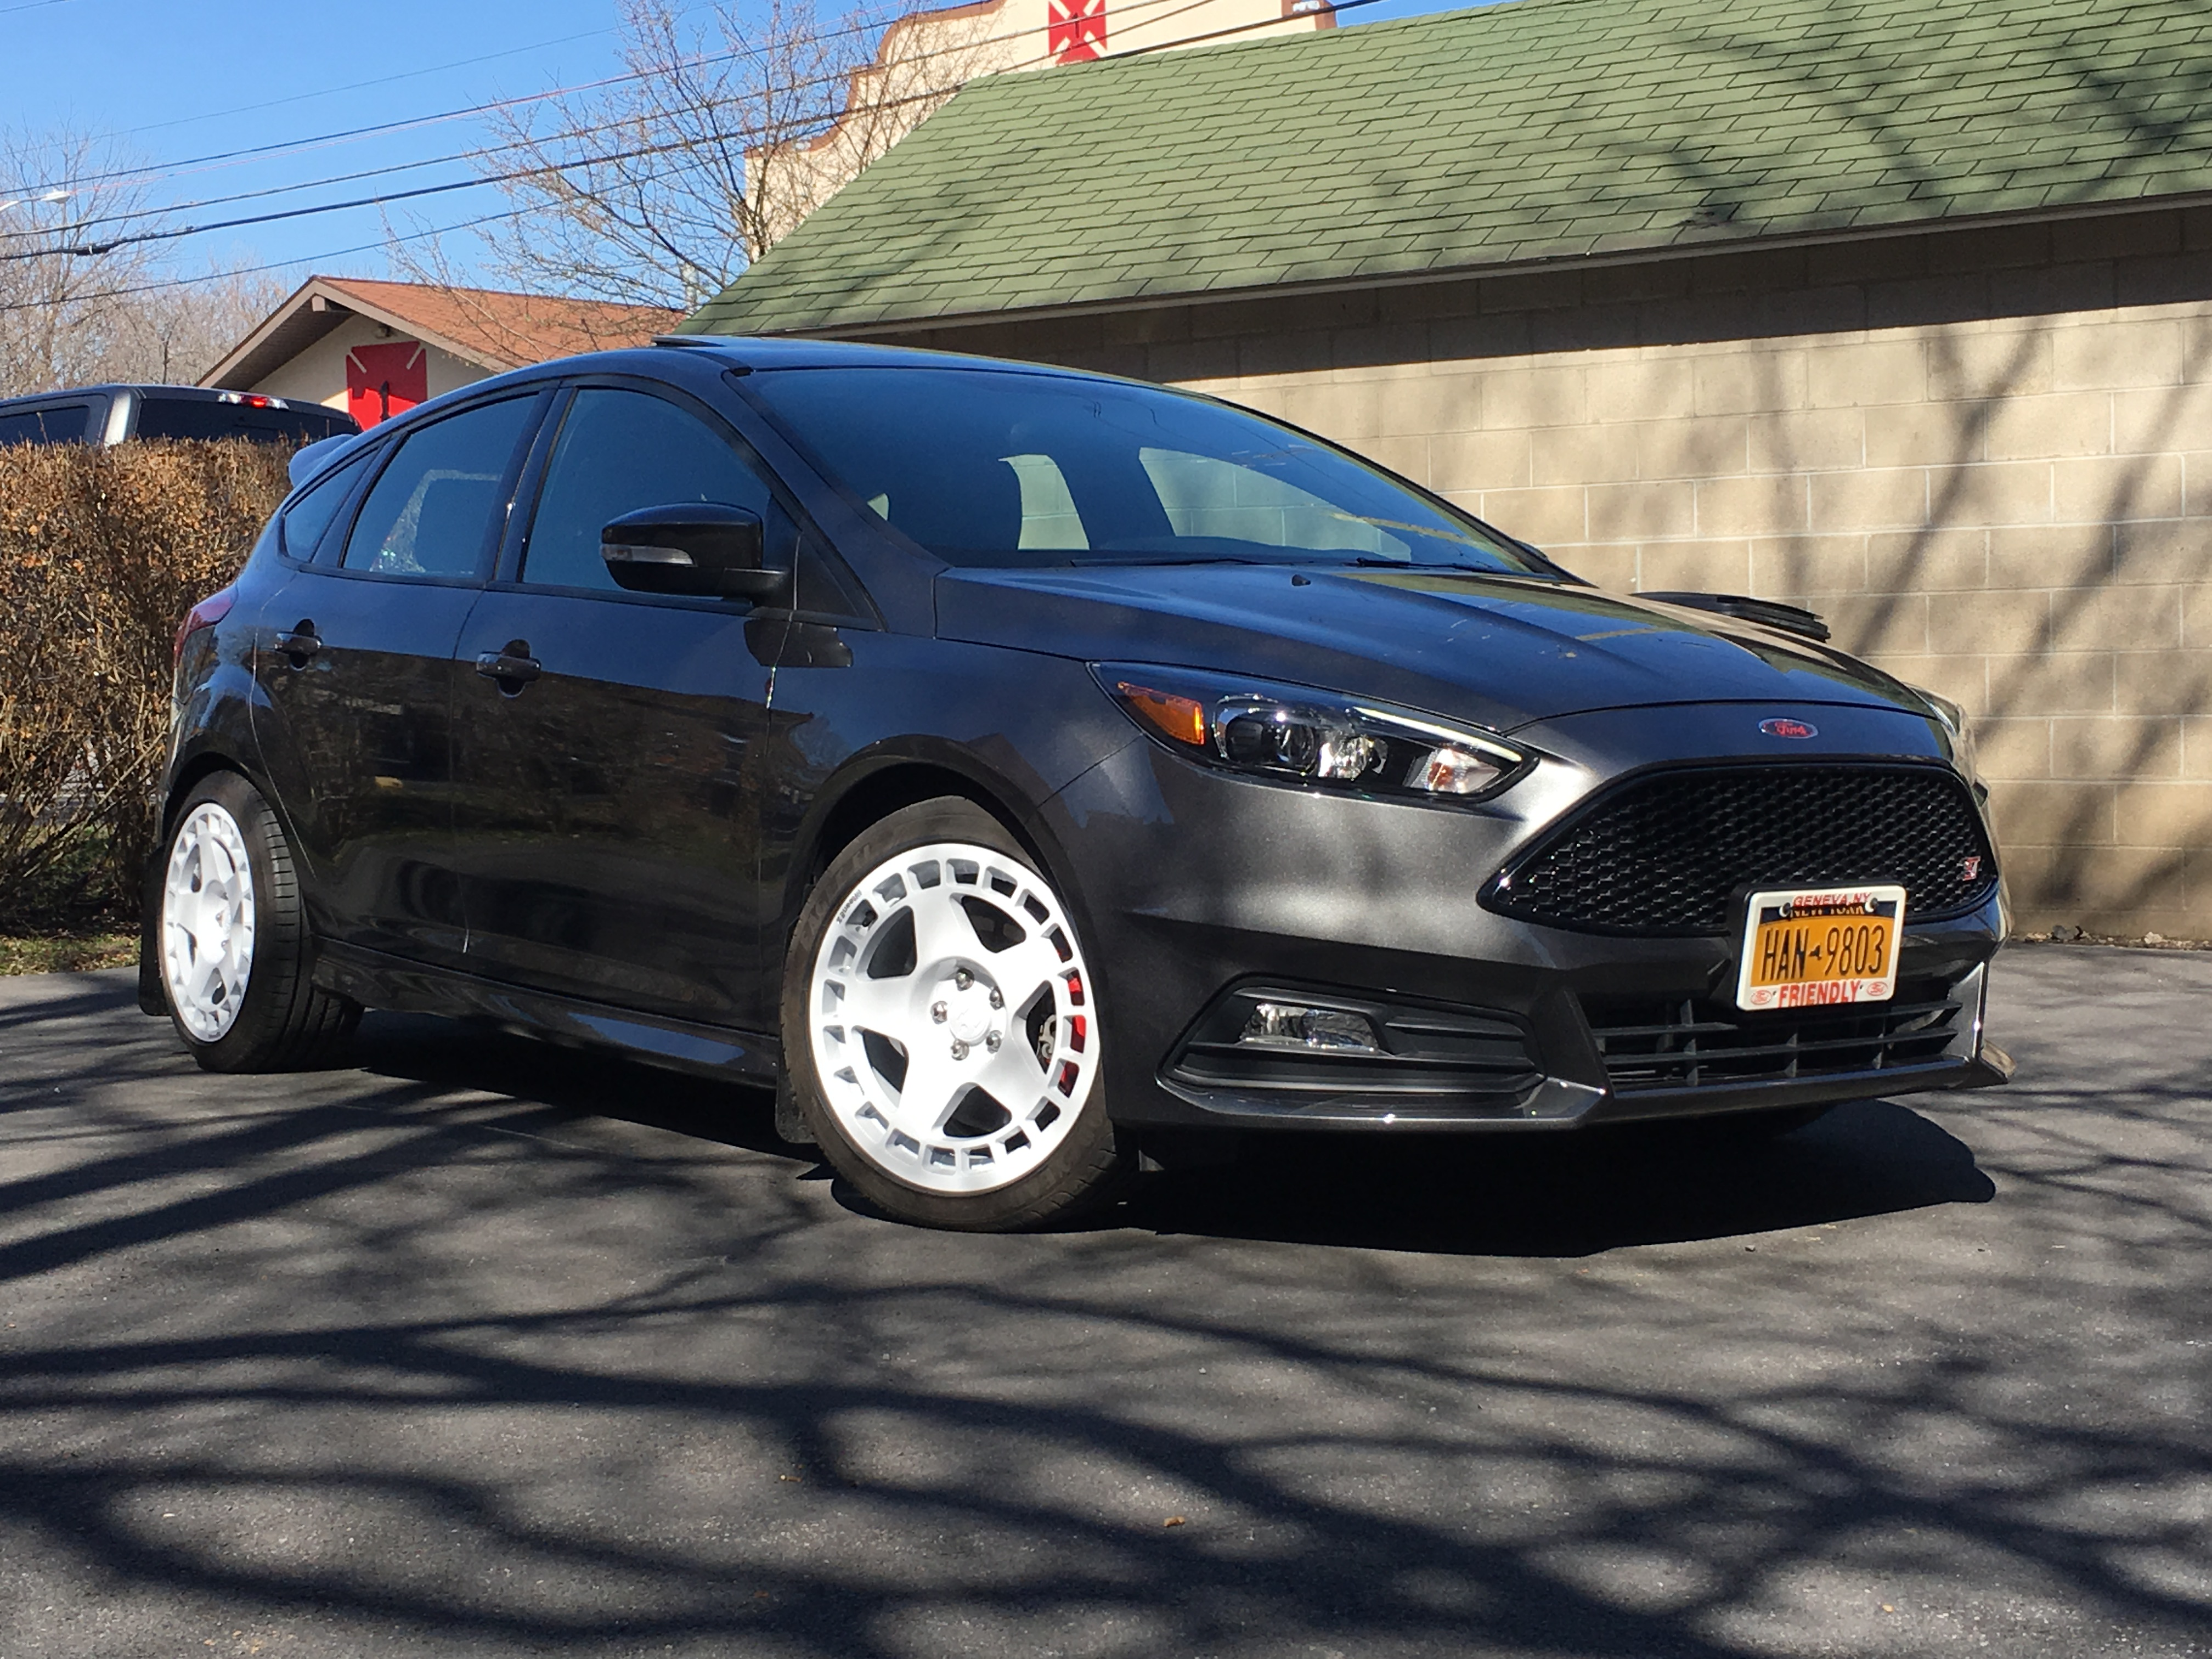 ficial Focus ST Wheel and Tire Fitment Picture Thread